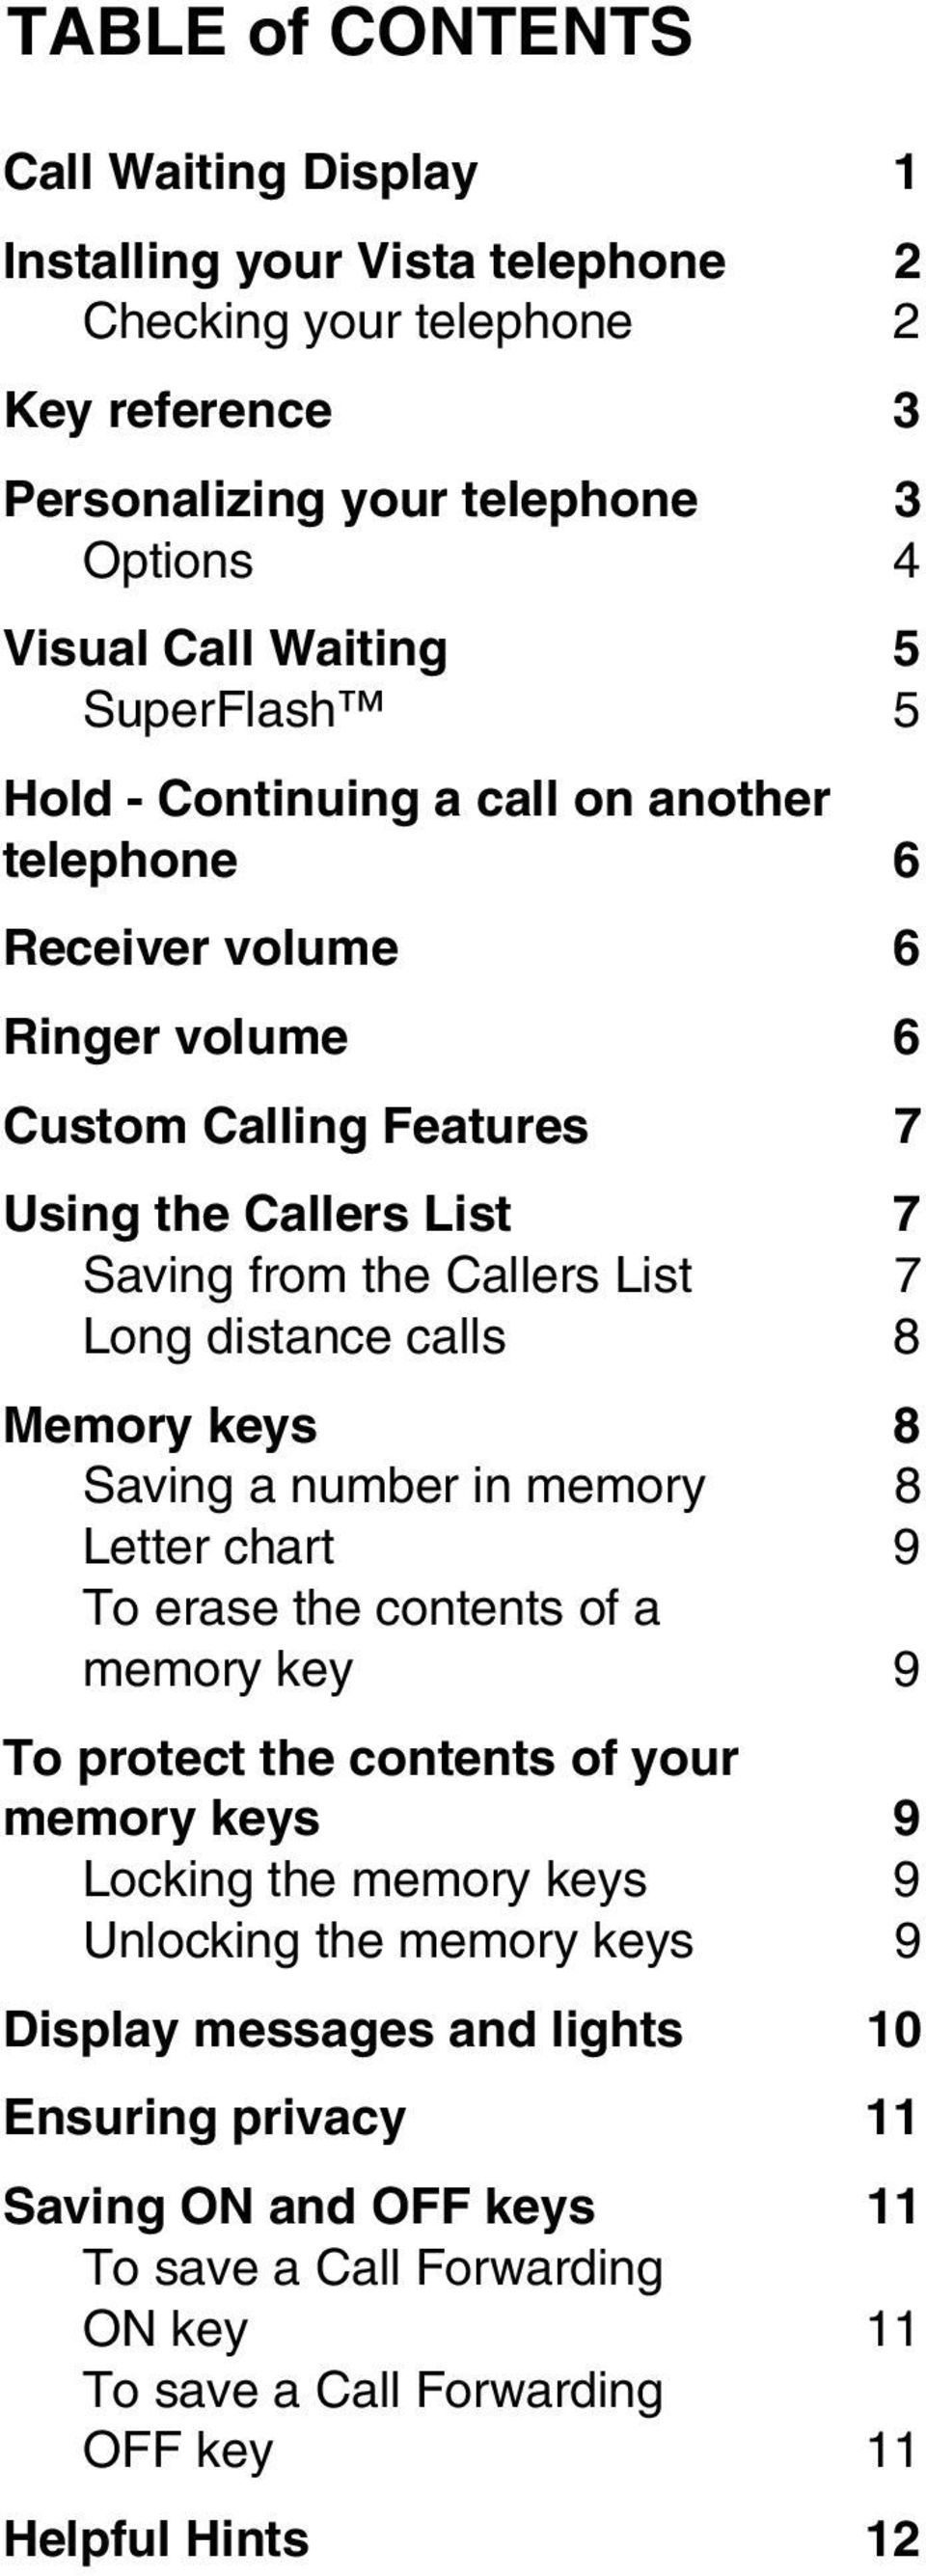 distance calls 8 Memory keys 8 Saving a number in memory 8 Letter chart 9 To erase the contents of a memory key 9 To protect the contents of your memory keys 9 Locking the memory keys 9